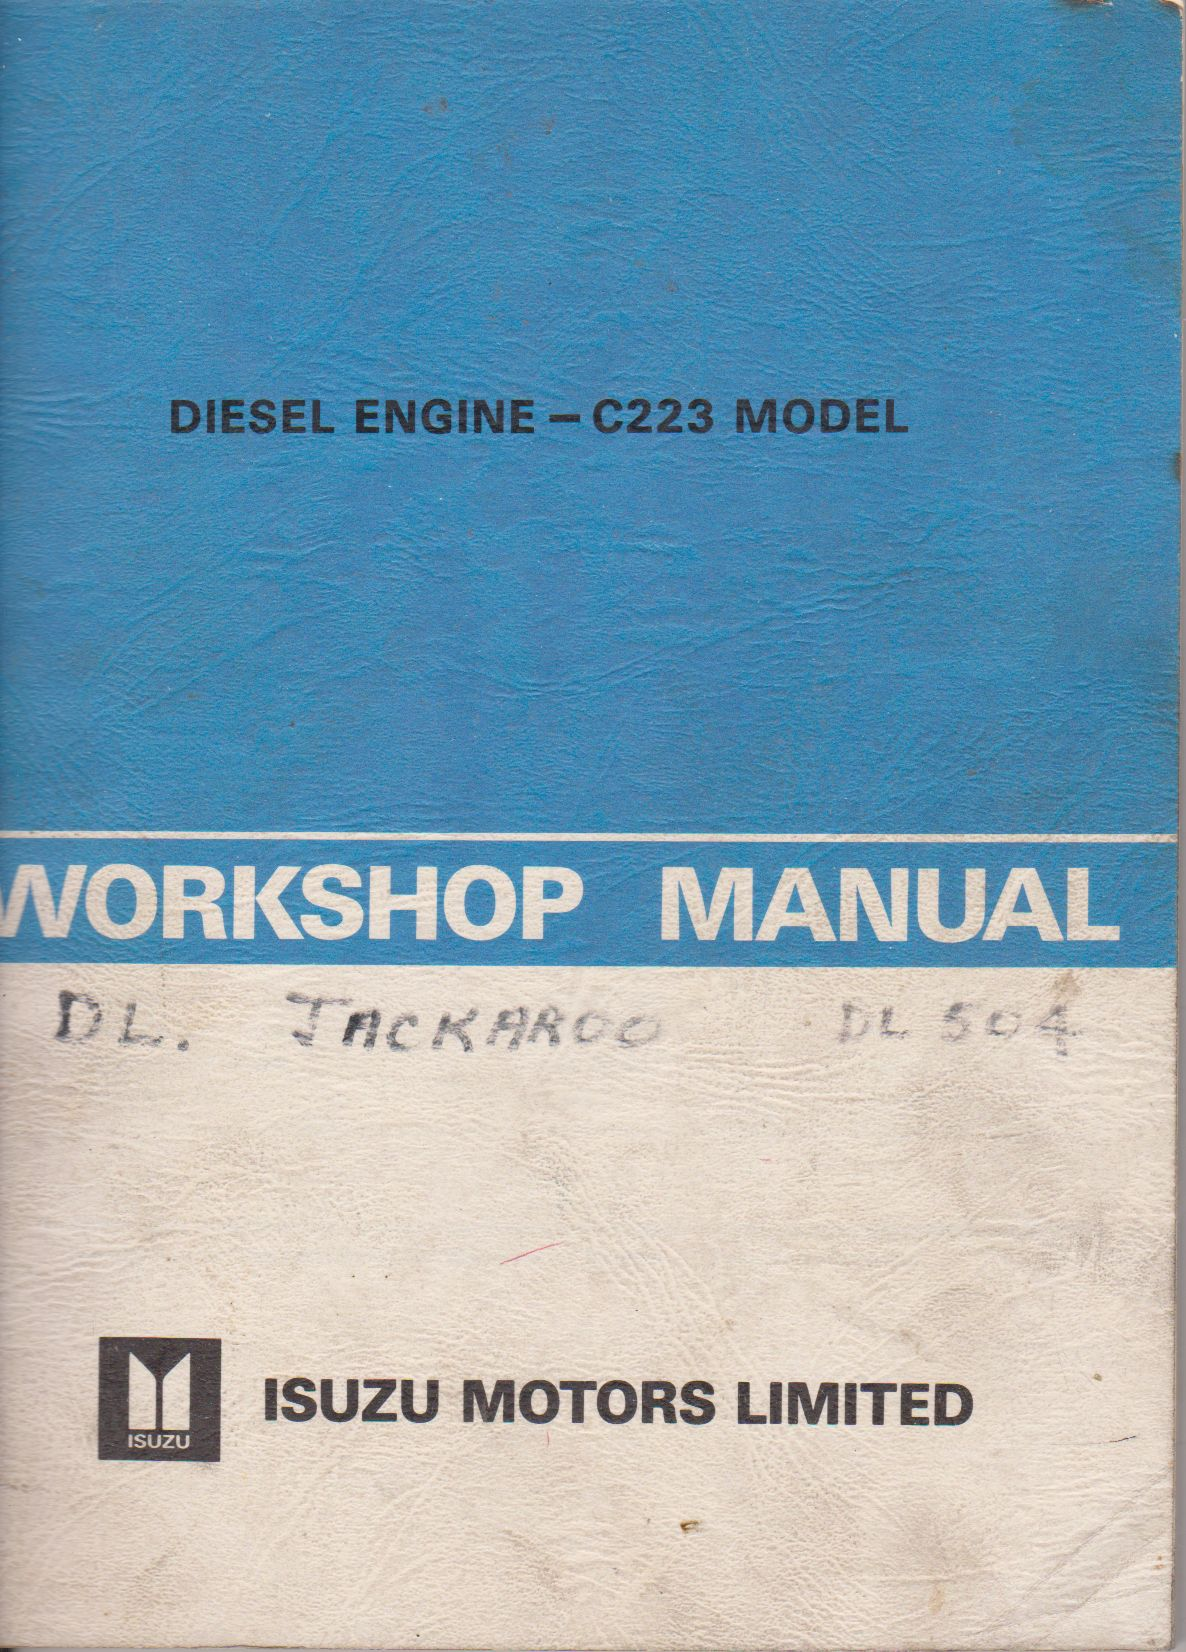 C223 DIESEL ENGINE ISUZU WORKSHOP MANUAL